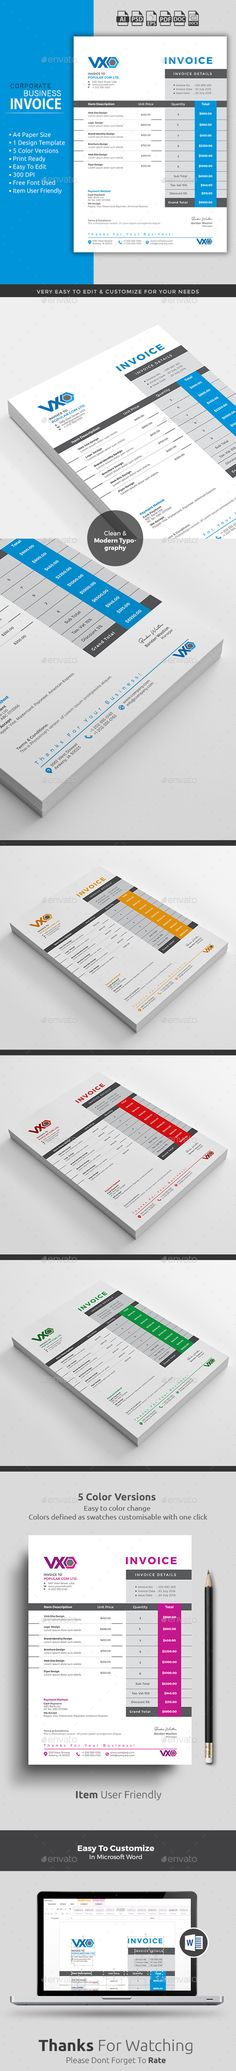 New Style Invoice Template - invoice style